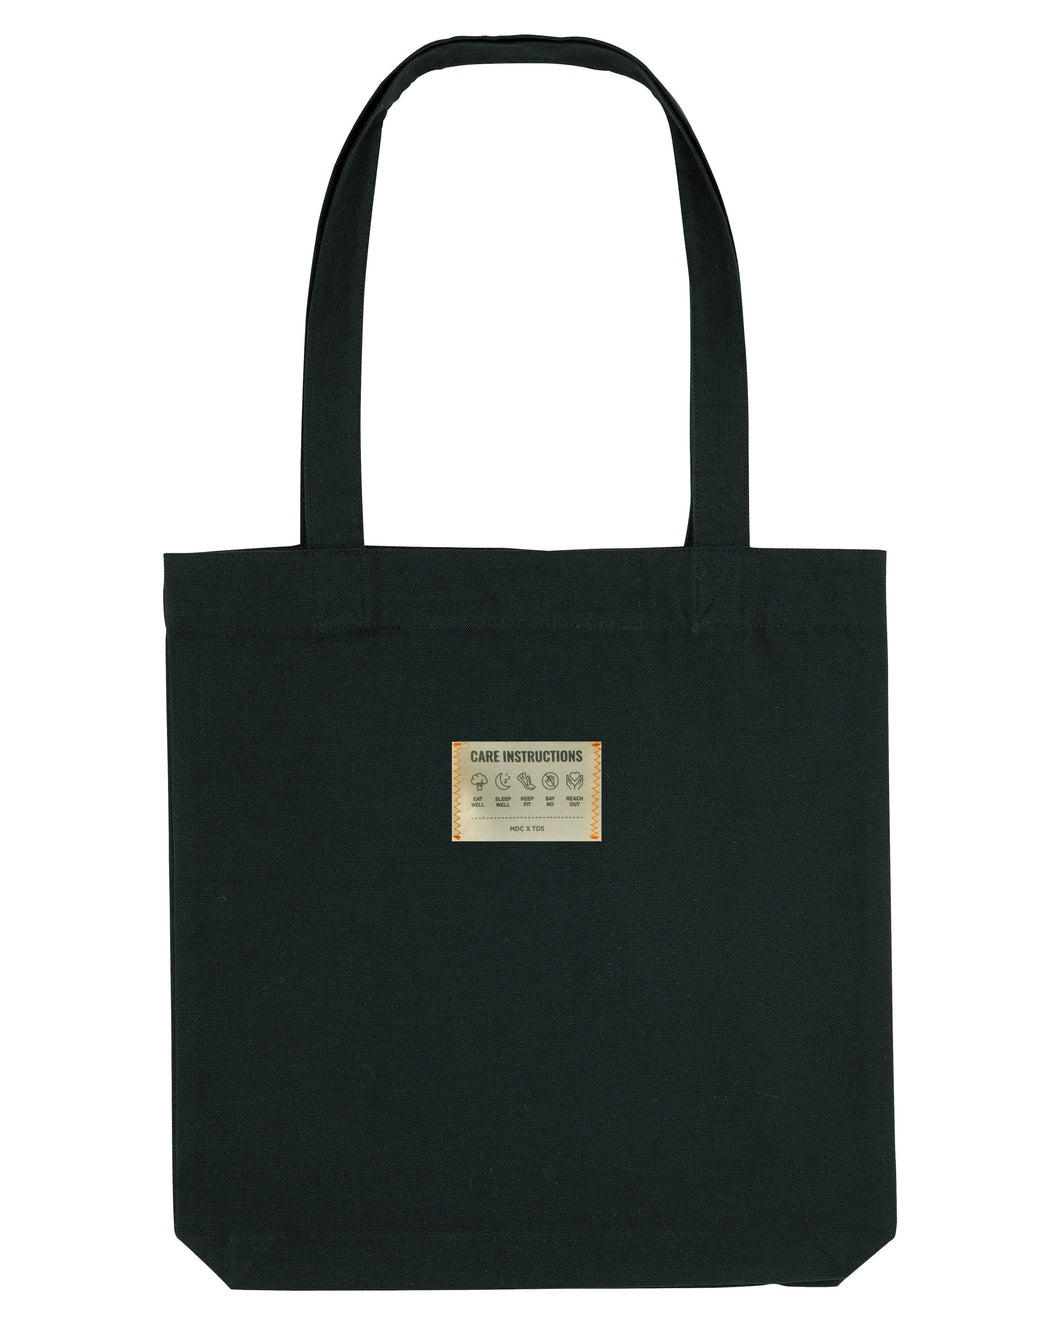 Maison de Choup care instructions tote bag